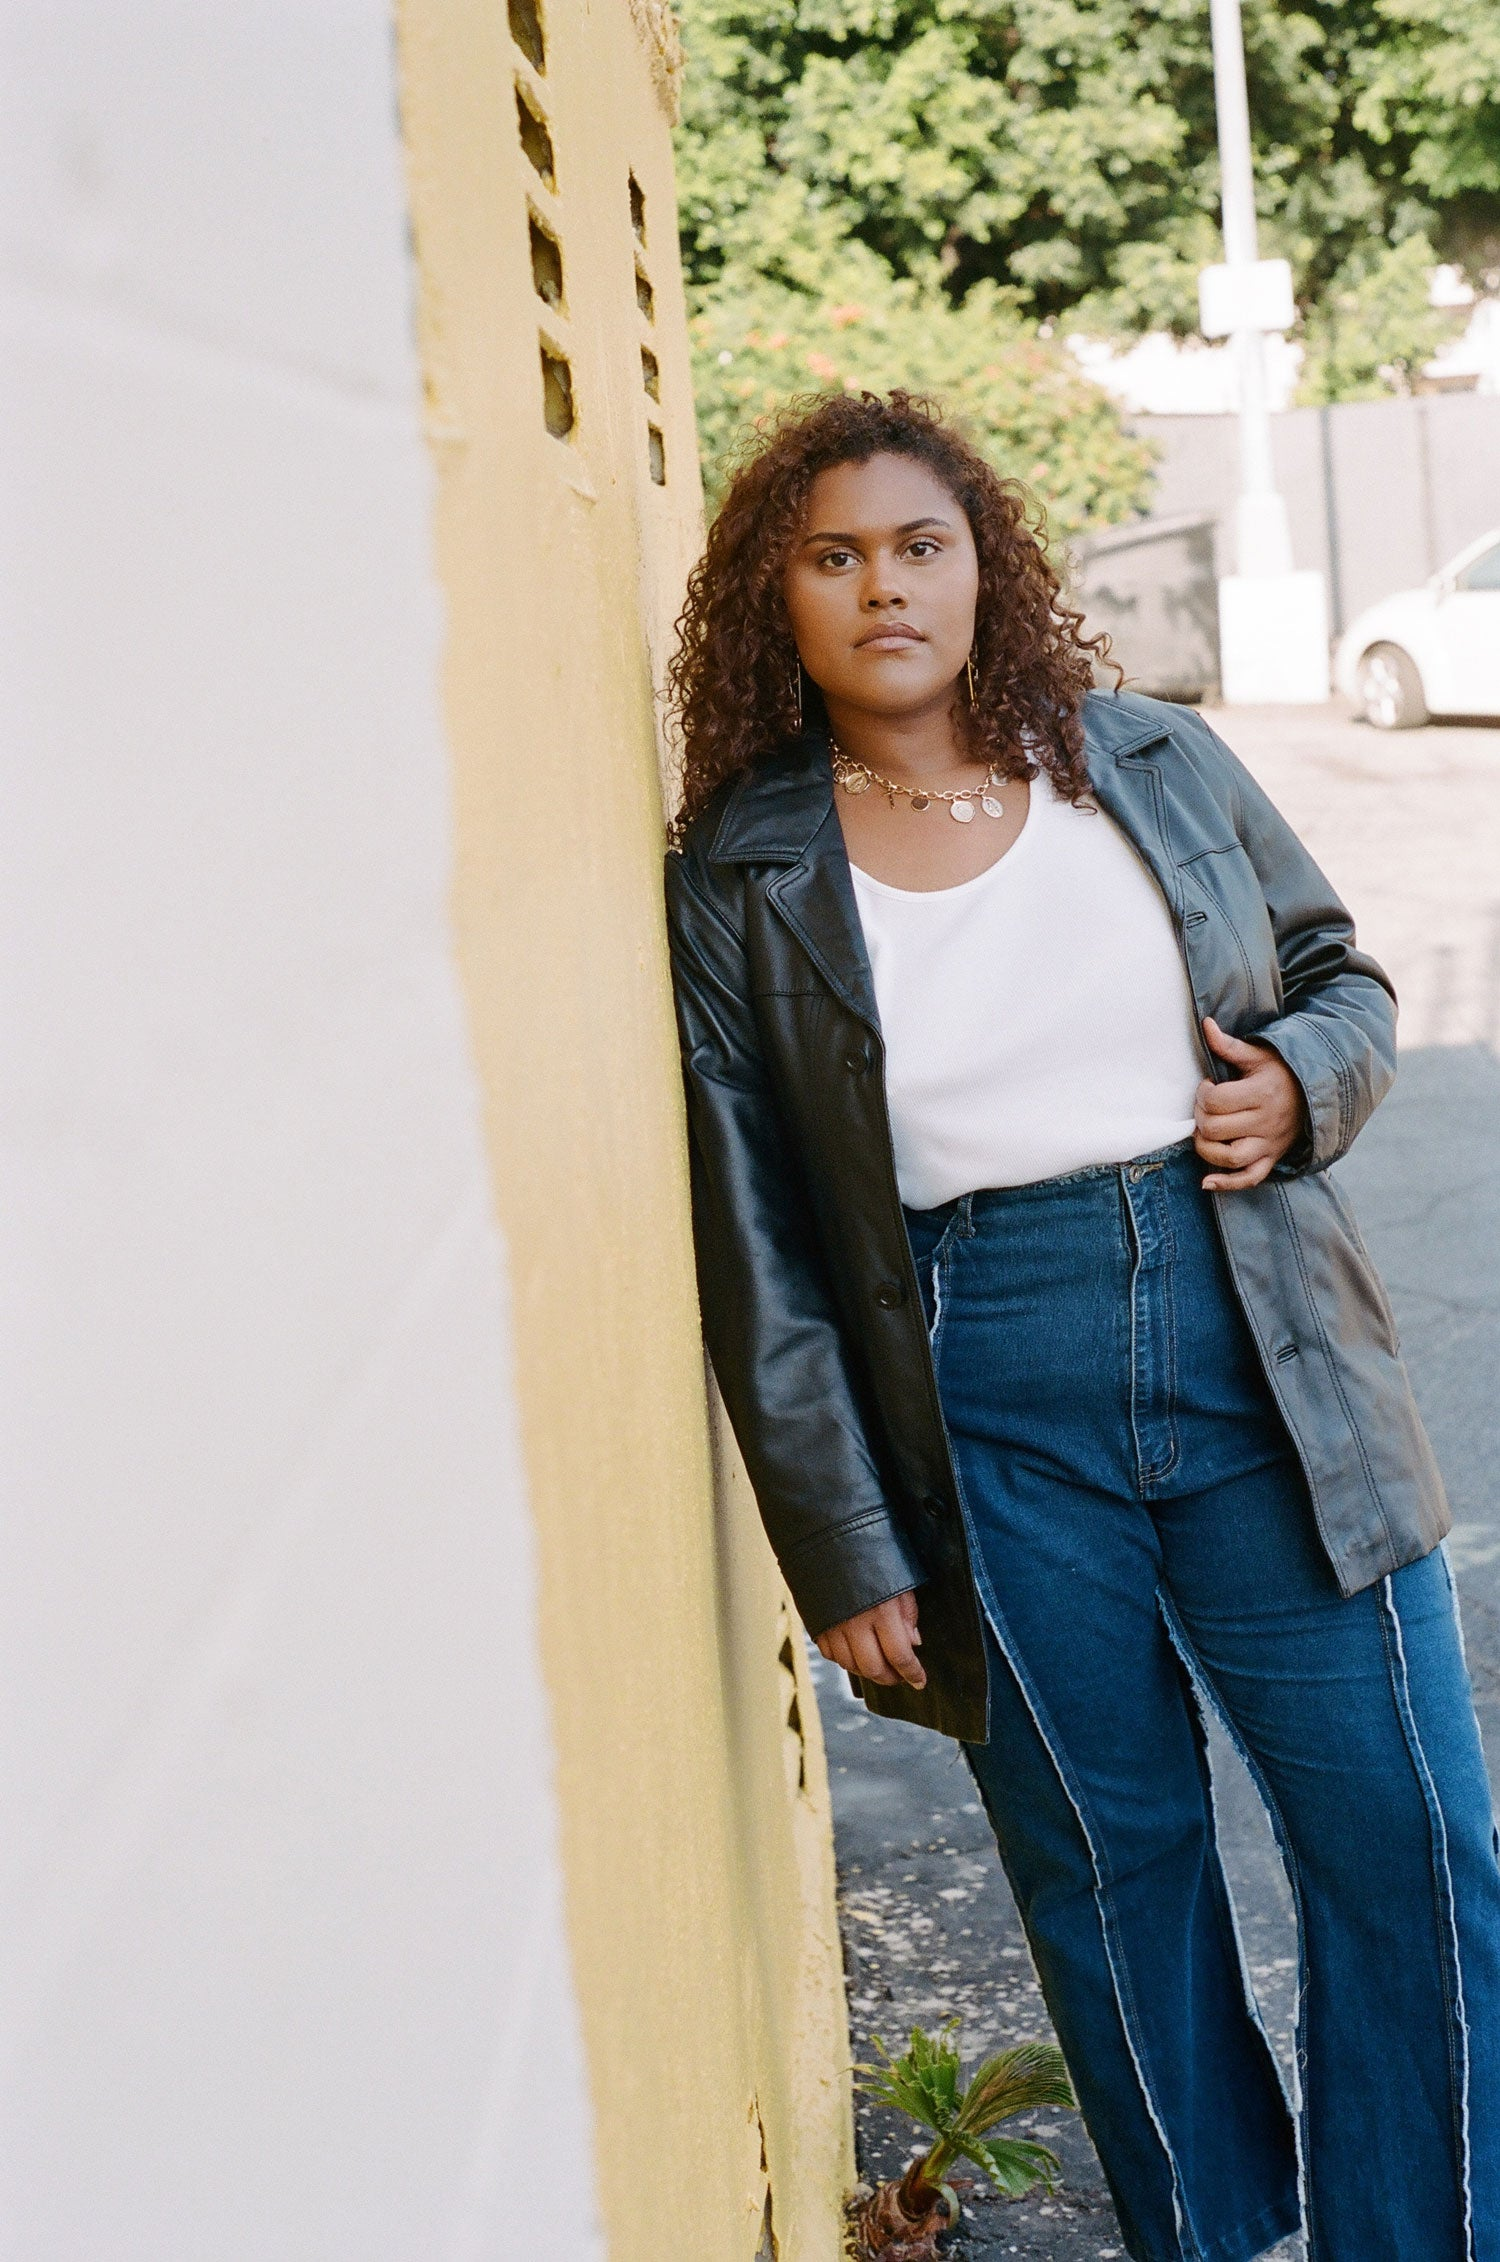 Fashion model leans against wall while wearing vintage 90s leather trench coat and plus size high waisted jeans.